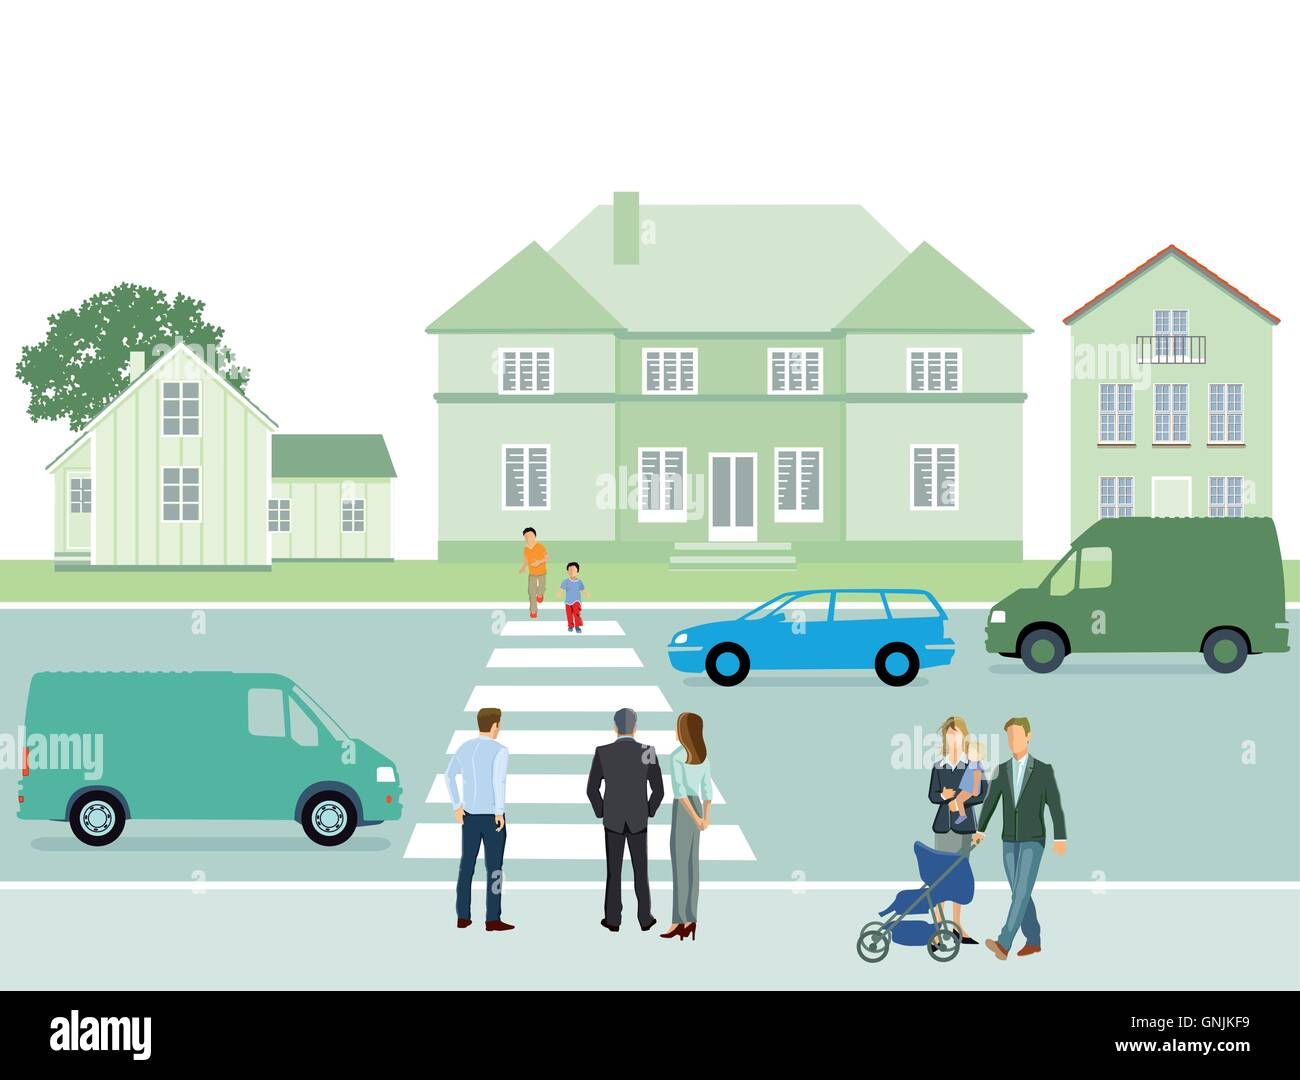 Pedestrian crosswalk - Stock Image